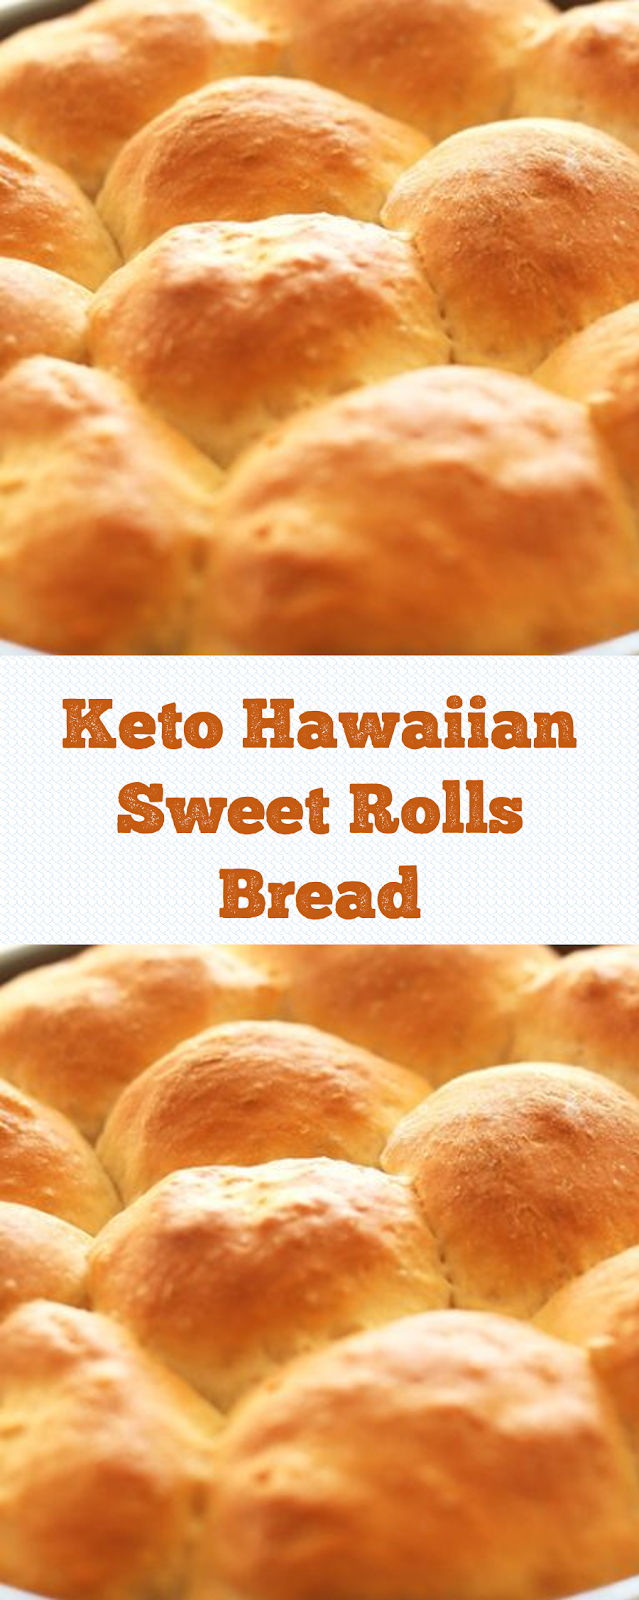 Keto Hawaiian Sweet Rolls Bread